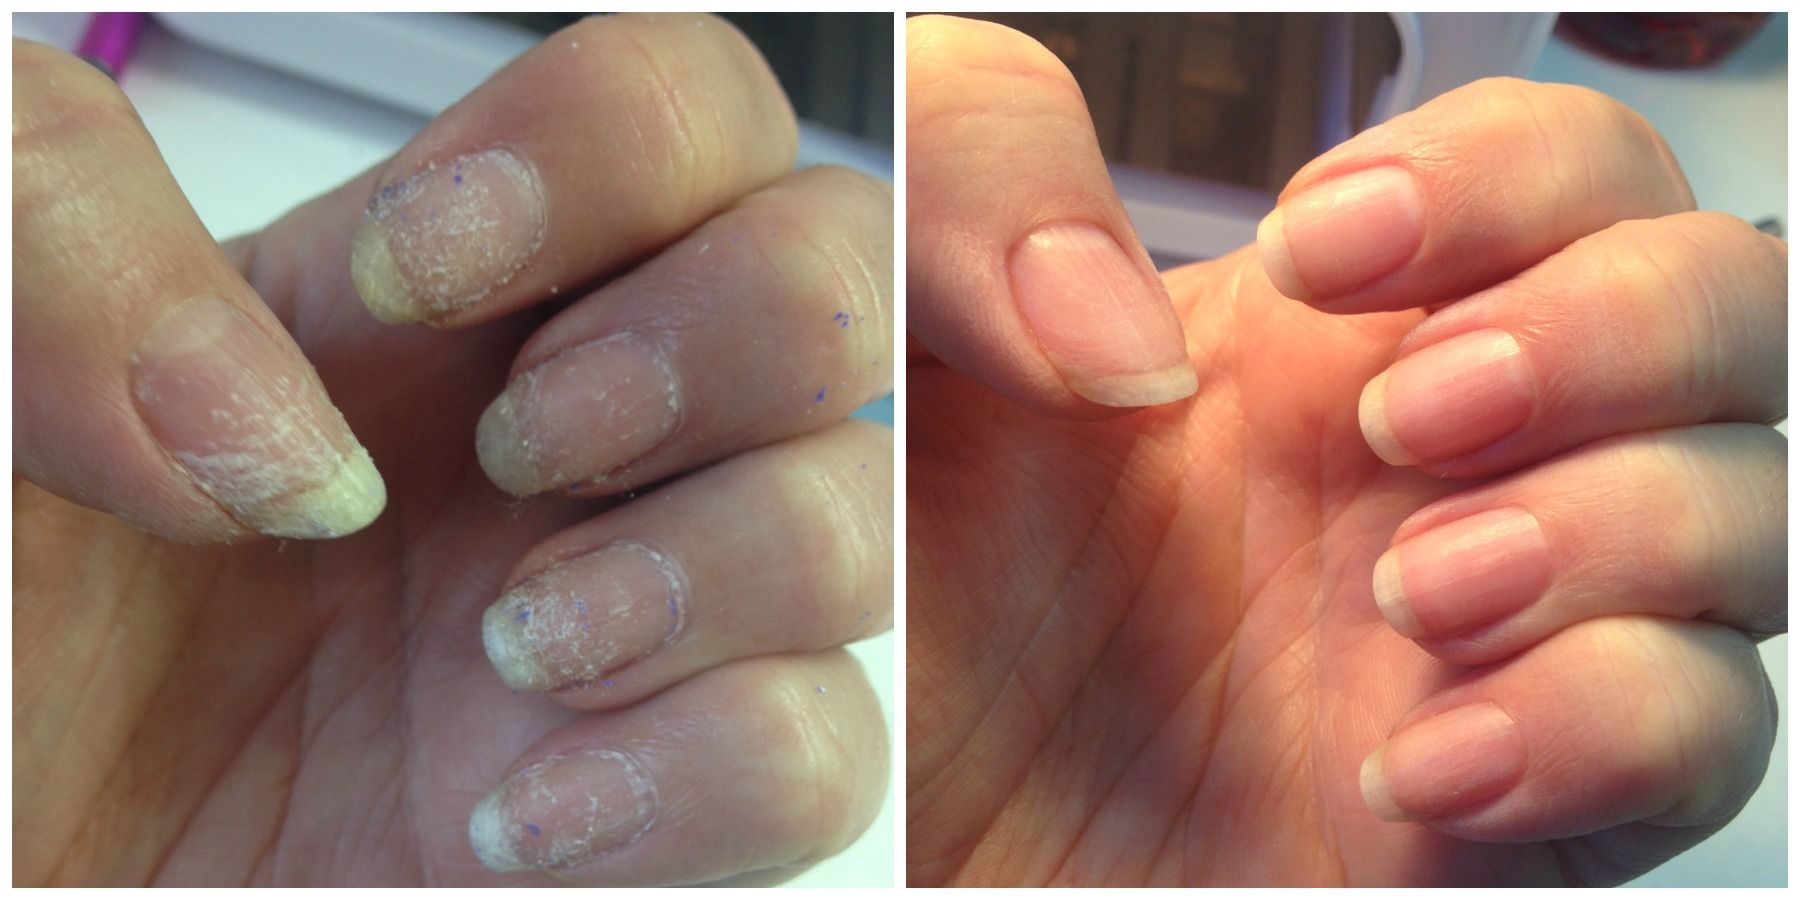 A gel polish tester tries ONE application of the IBX system and gets ...